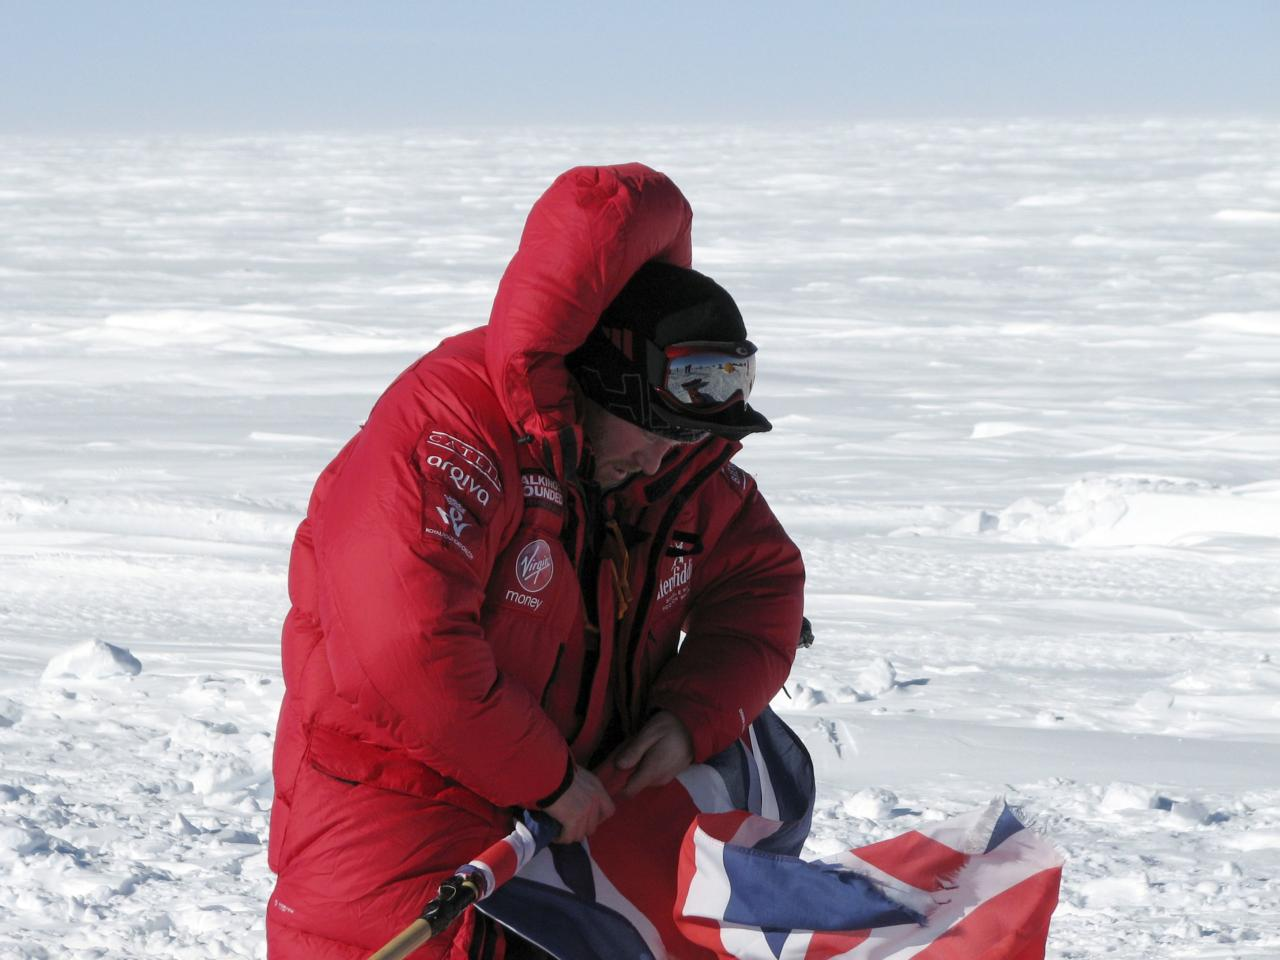 Prince Harry rolls the Union Jack on the first day of the Virgin Money South Pole Allied Challenge 2013 expedition in Antarctica December 1, 2013. Prince Harry set off on Sunday on his 300 kilometre (186 miles) walk to the South Pole for the charity Walking With The Wounded (WWTW) to raise money for wounded servicemen and women. The Virgin Money South Pole Allied Challenge 2013, of which Harry is patron, will see the participants race across three degrees to the South Pole. All 12 injured service personnel from Britain, America, Canada and Australia have overcome life-changing injuries and undertaken challenging training programmes to prepare themselves for the conditions they will face in Antarctica. Trekking around up to 20km (12 miles) per day, the teams will endure temperatures as low as minus 45 centigrades (minus 113 Fahrenheit) and 80 kph (50 mph) winds as they pull their 70 kg (154 pound) sleds, known as pulks, towards the southernmost point on the globe. Picture taken December 1, 2013. REUTERS/Victoria Nicholson/Walking With the Wounded (ANTARCTICA - Tags: ENVIRONMENT ROYALS SPORT MILITARY) NO COMMERCIAL OR BOOK SALES. NO SALES. FOR EDITORIAL USE ONLY. NOT FOR SALE FOR MARKETING OR ADVERTISING CAMPAIGNS. MANDATORY CREDIT